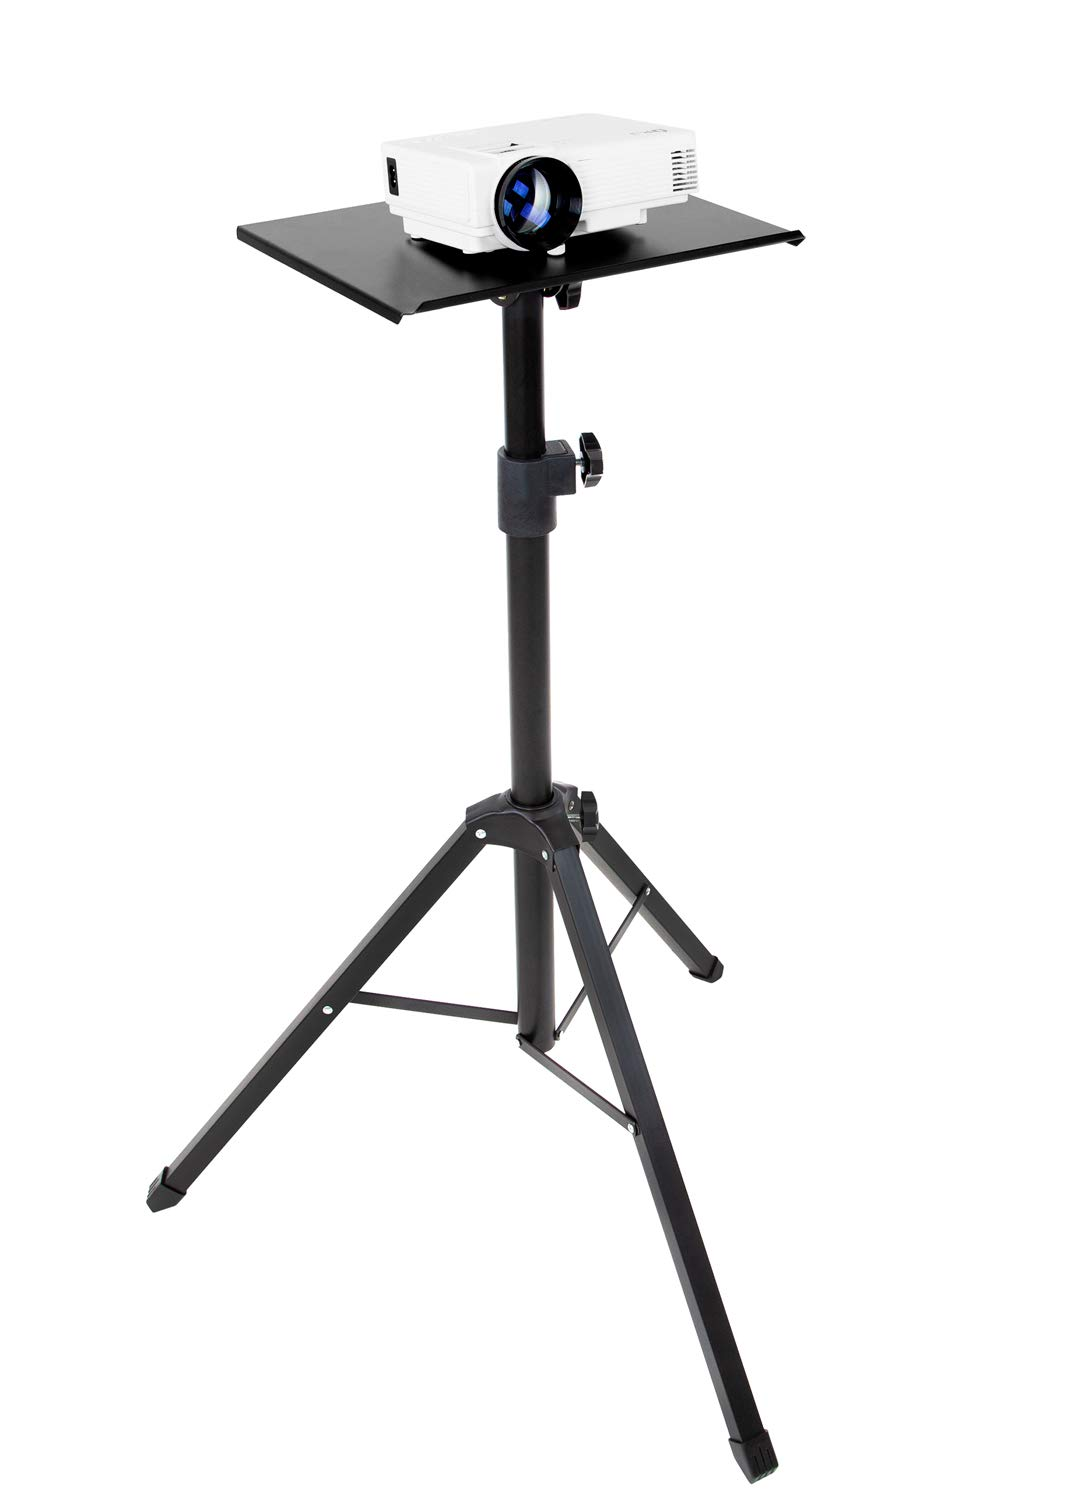 Mount-It! Tripod Projector Stand, Adjustable DJ Laptop Stand with Height and Tilt Adjustment, Portable Laptop Projector Table with Steel Tripod Base and Tray, Black by Mount-It! (Image #1)